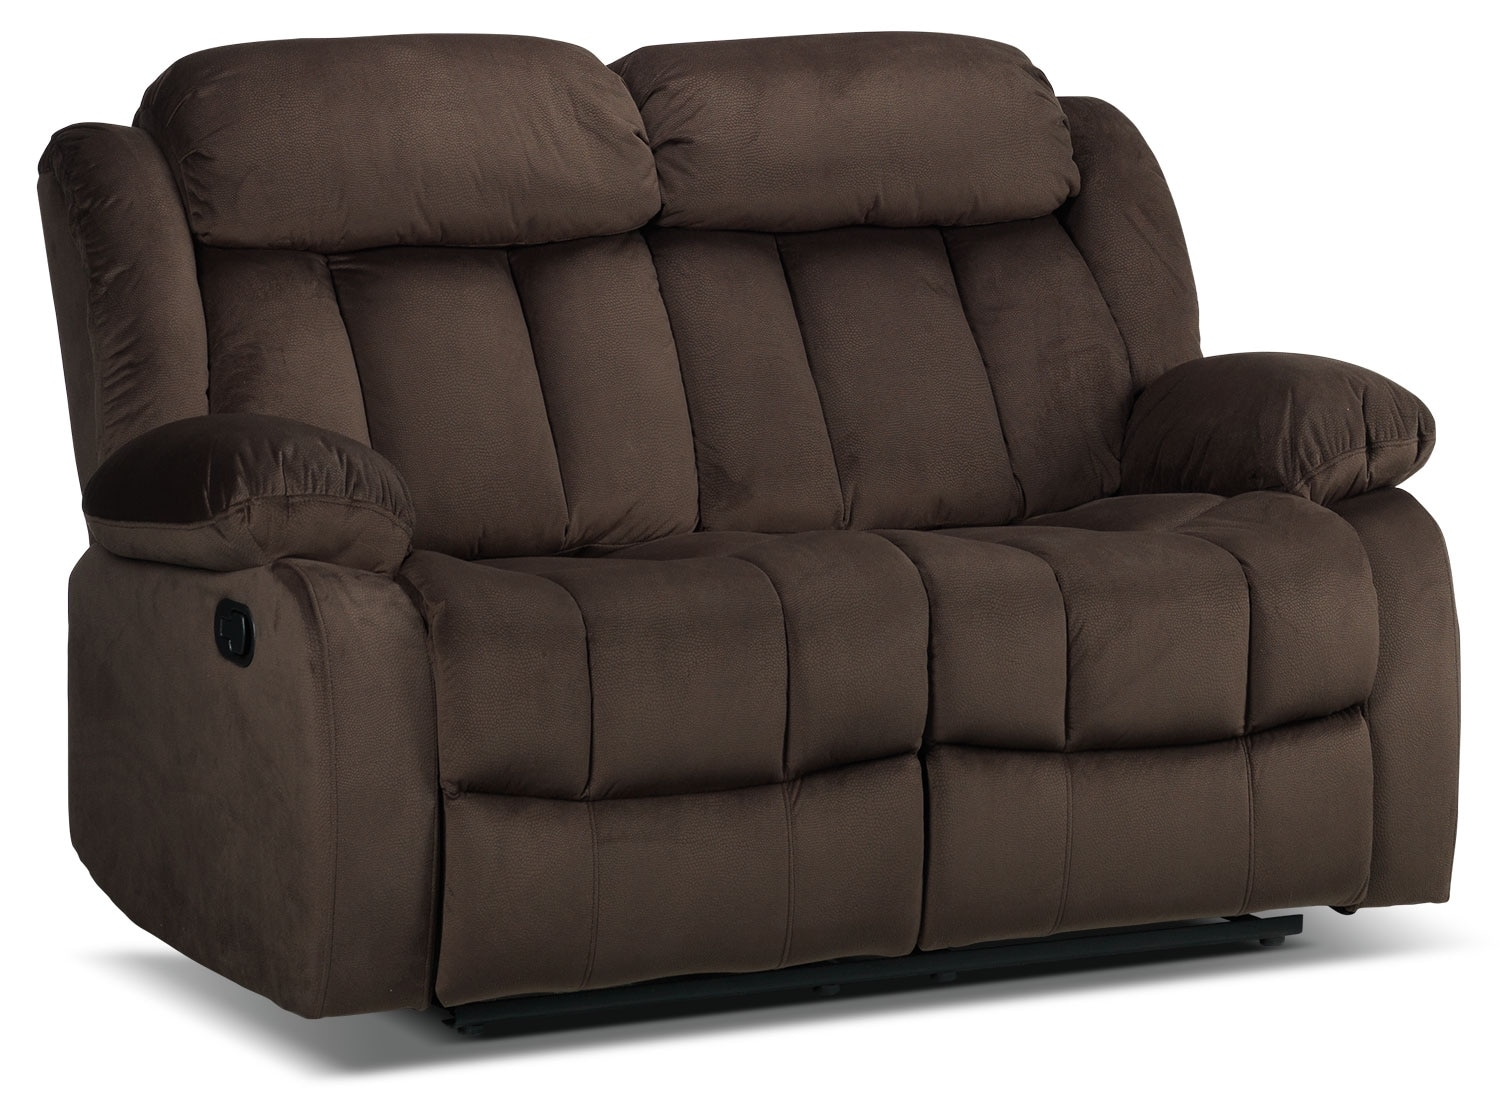 Alabama Reclining Loveseat